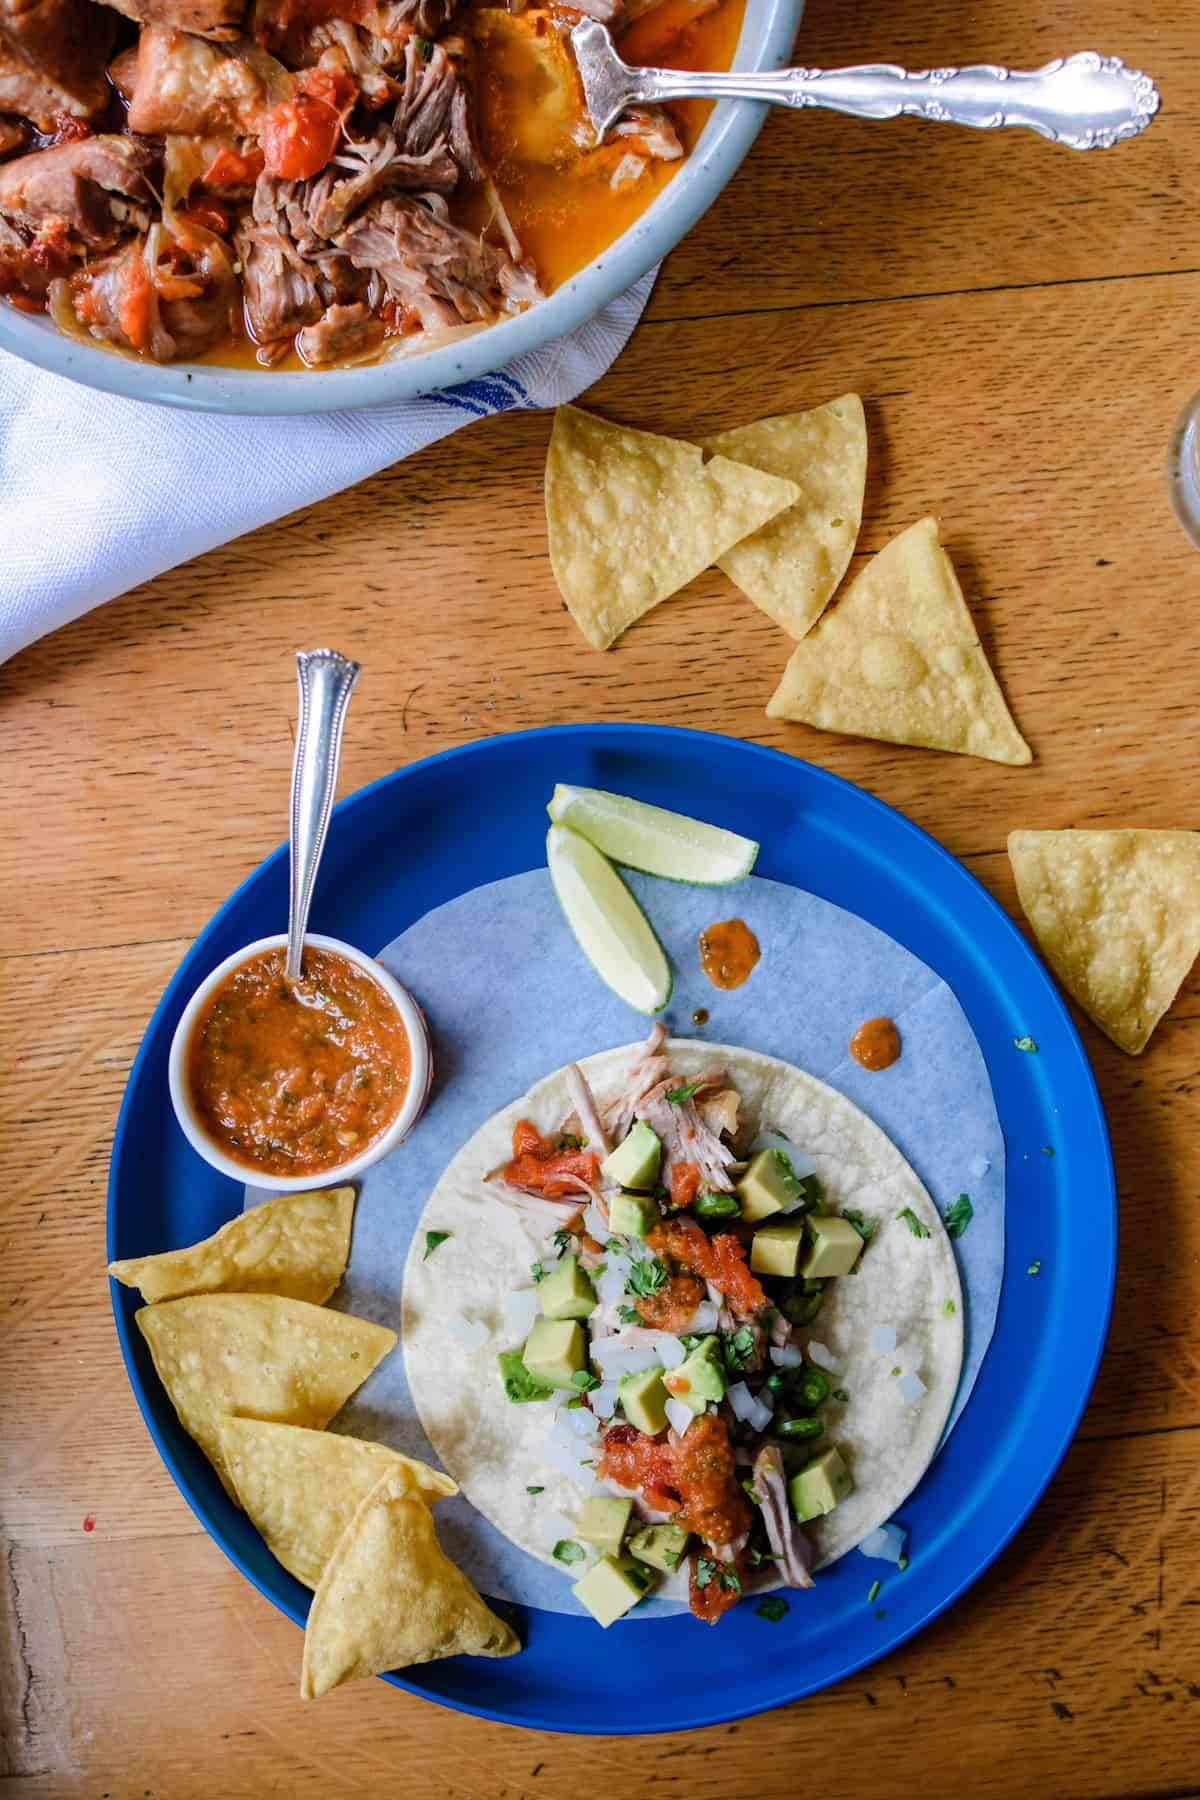 A blue plate with a pork Tinga taco on it, tortilla chips on the side, and small dish of salsa with a spoon in the dish. A few more chips are scattered on the table.